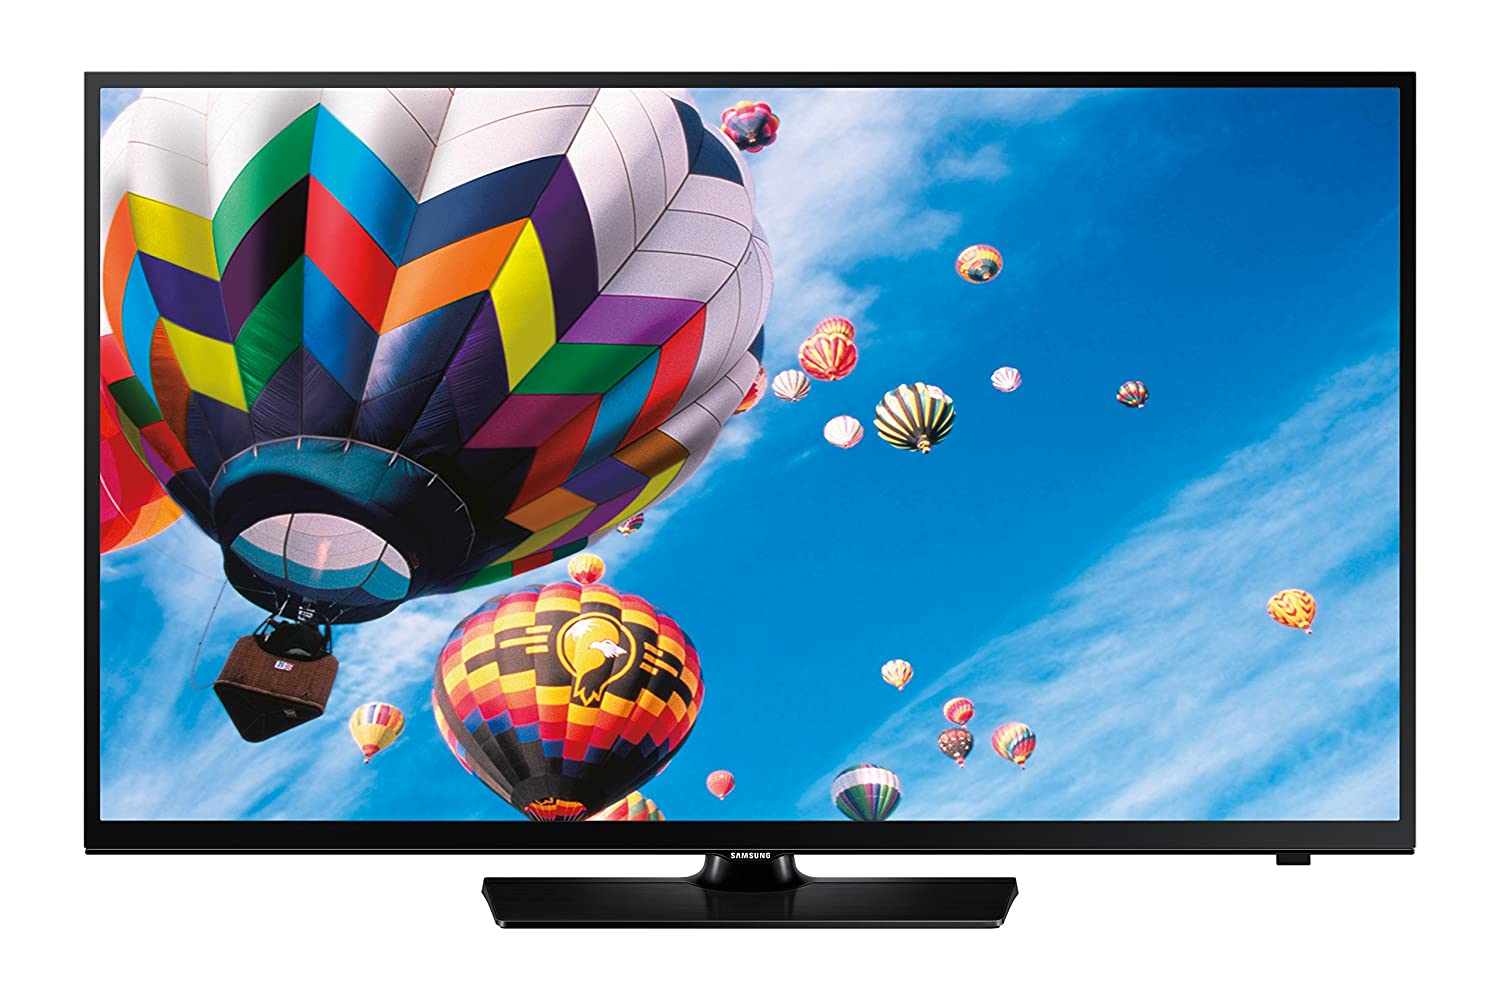 samsung tv 48 inch. samsung ue48h4200 48-inch widescreen hd ready slim led television with freeview (discontinued by manufacturer): amazon.co.uk: tv tv 48 inch